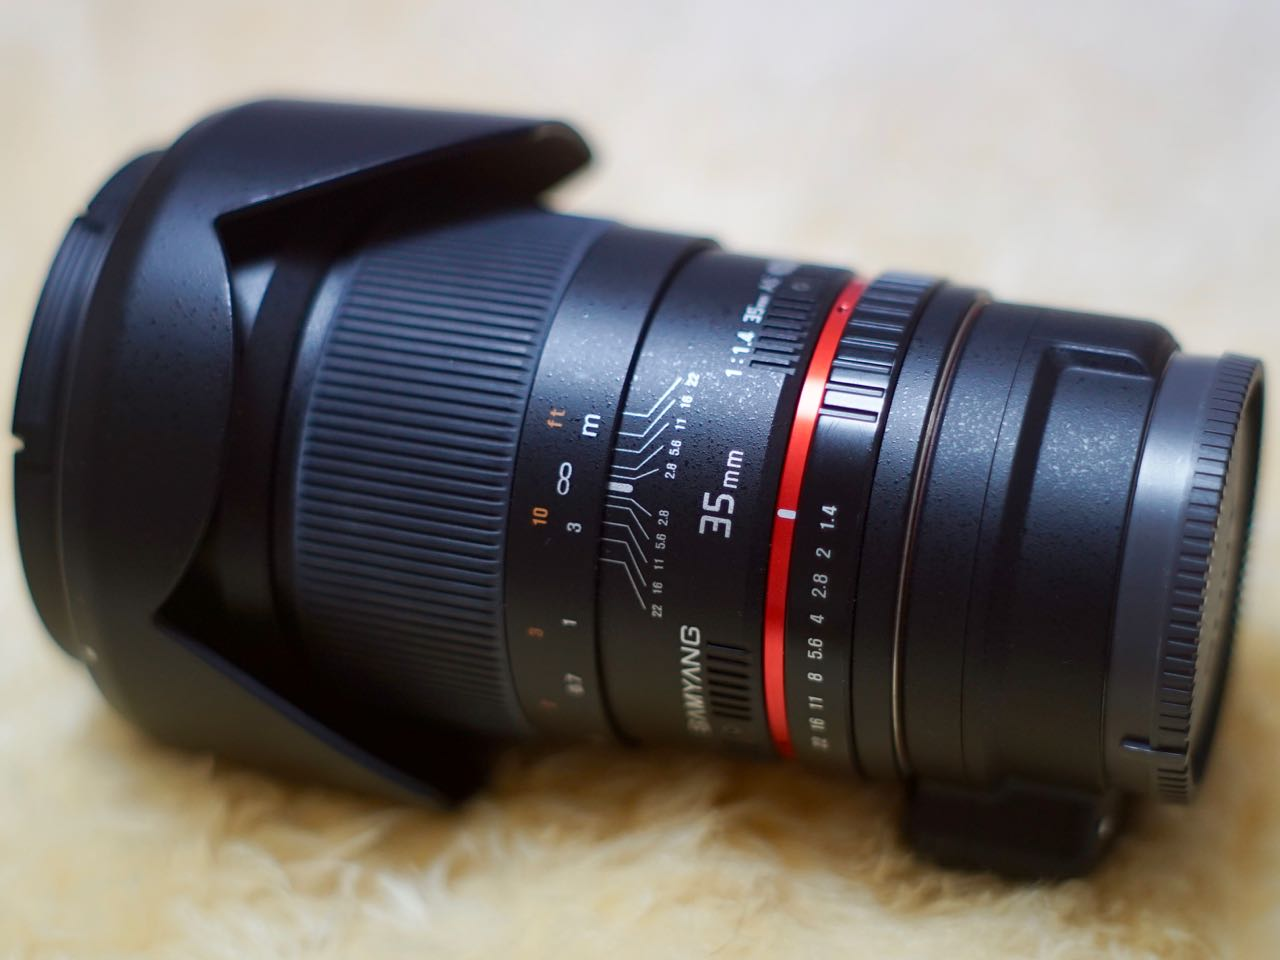 SAMYANG 35mm F1.4 AS UMC for Sony